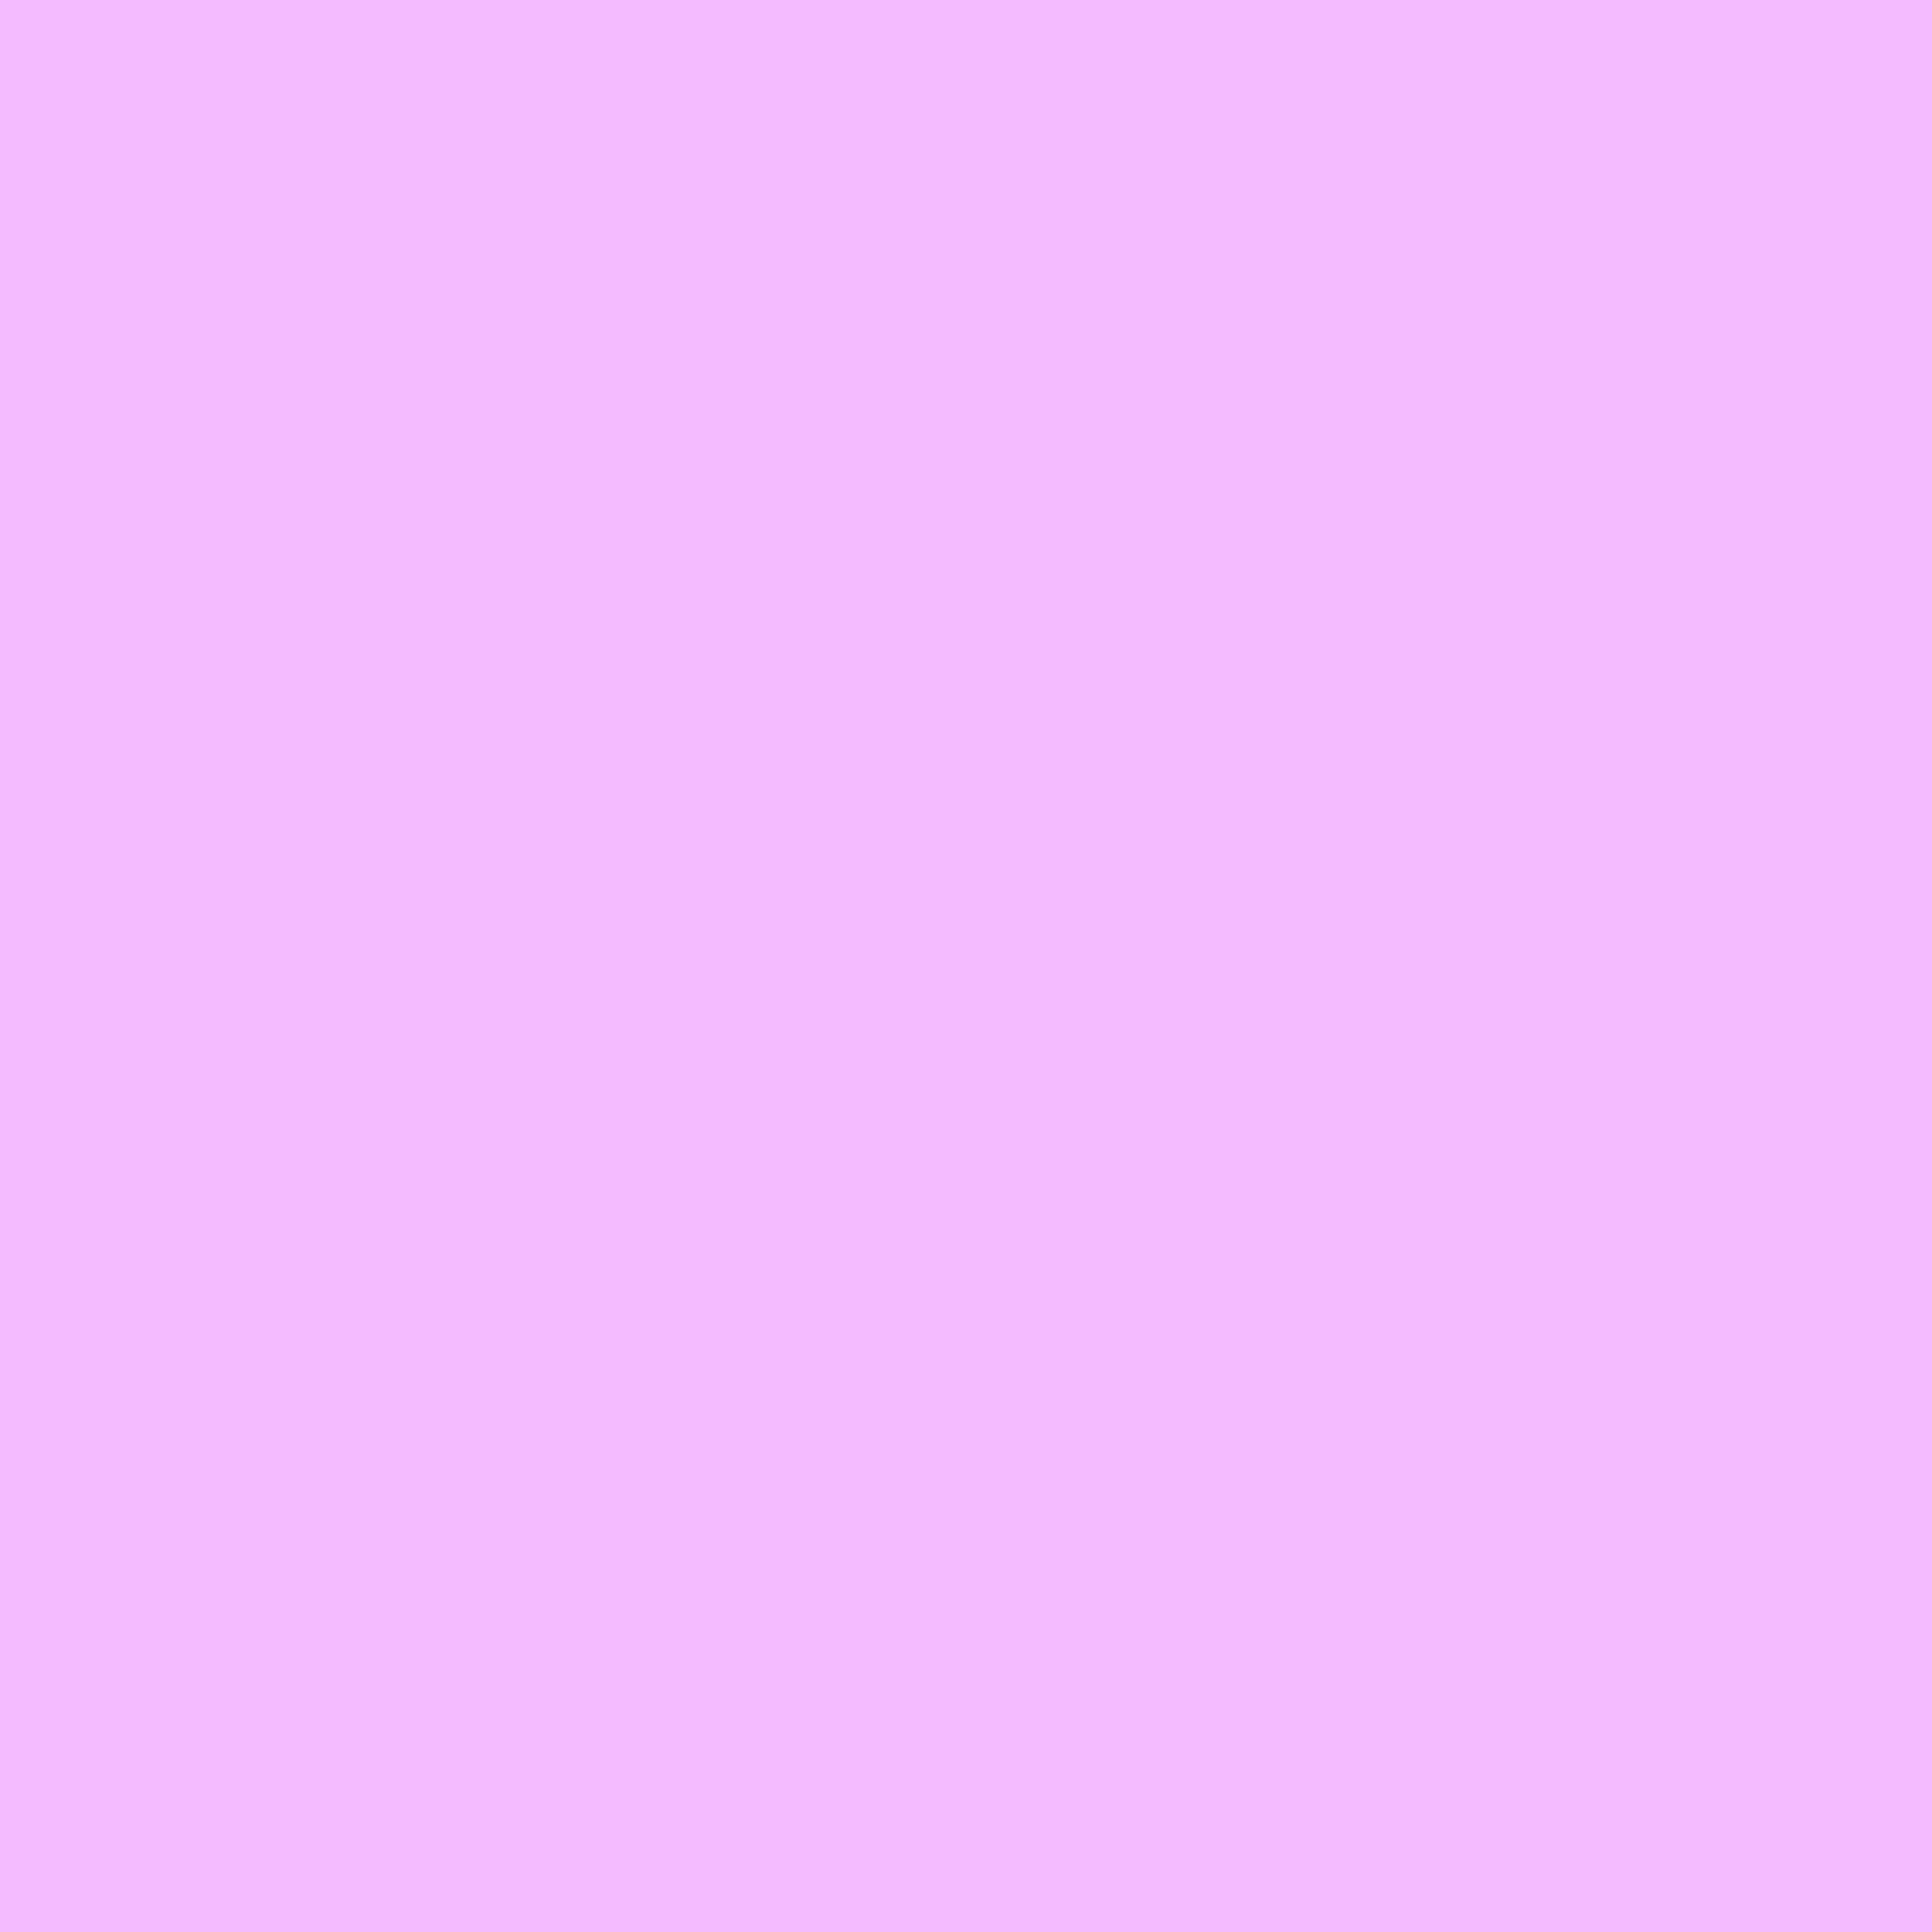 2732x2732 Brilliant Lavender Solid Color Background